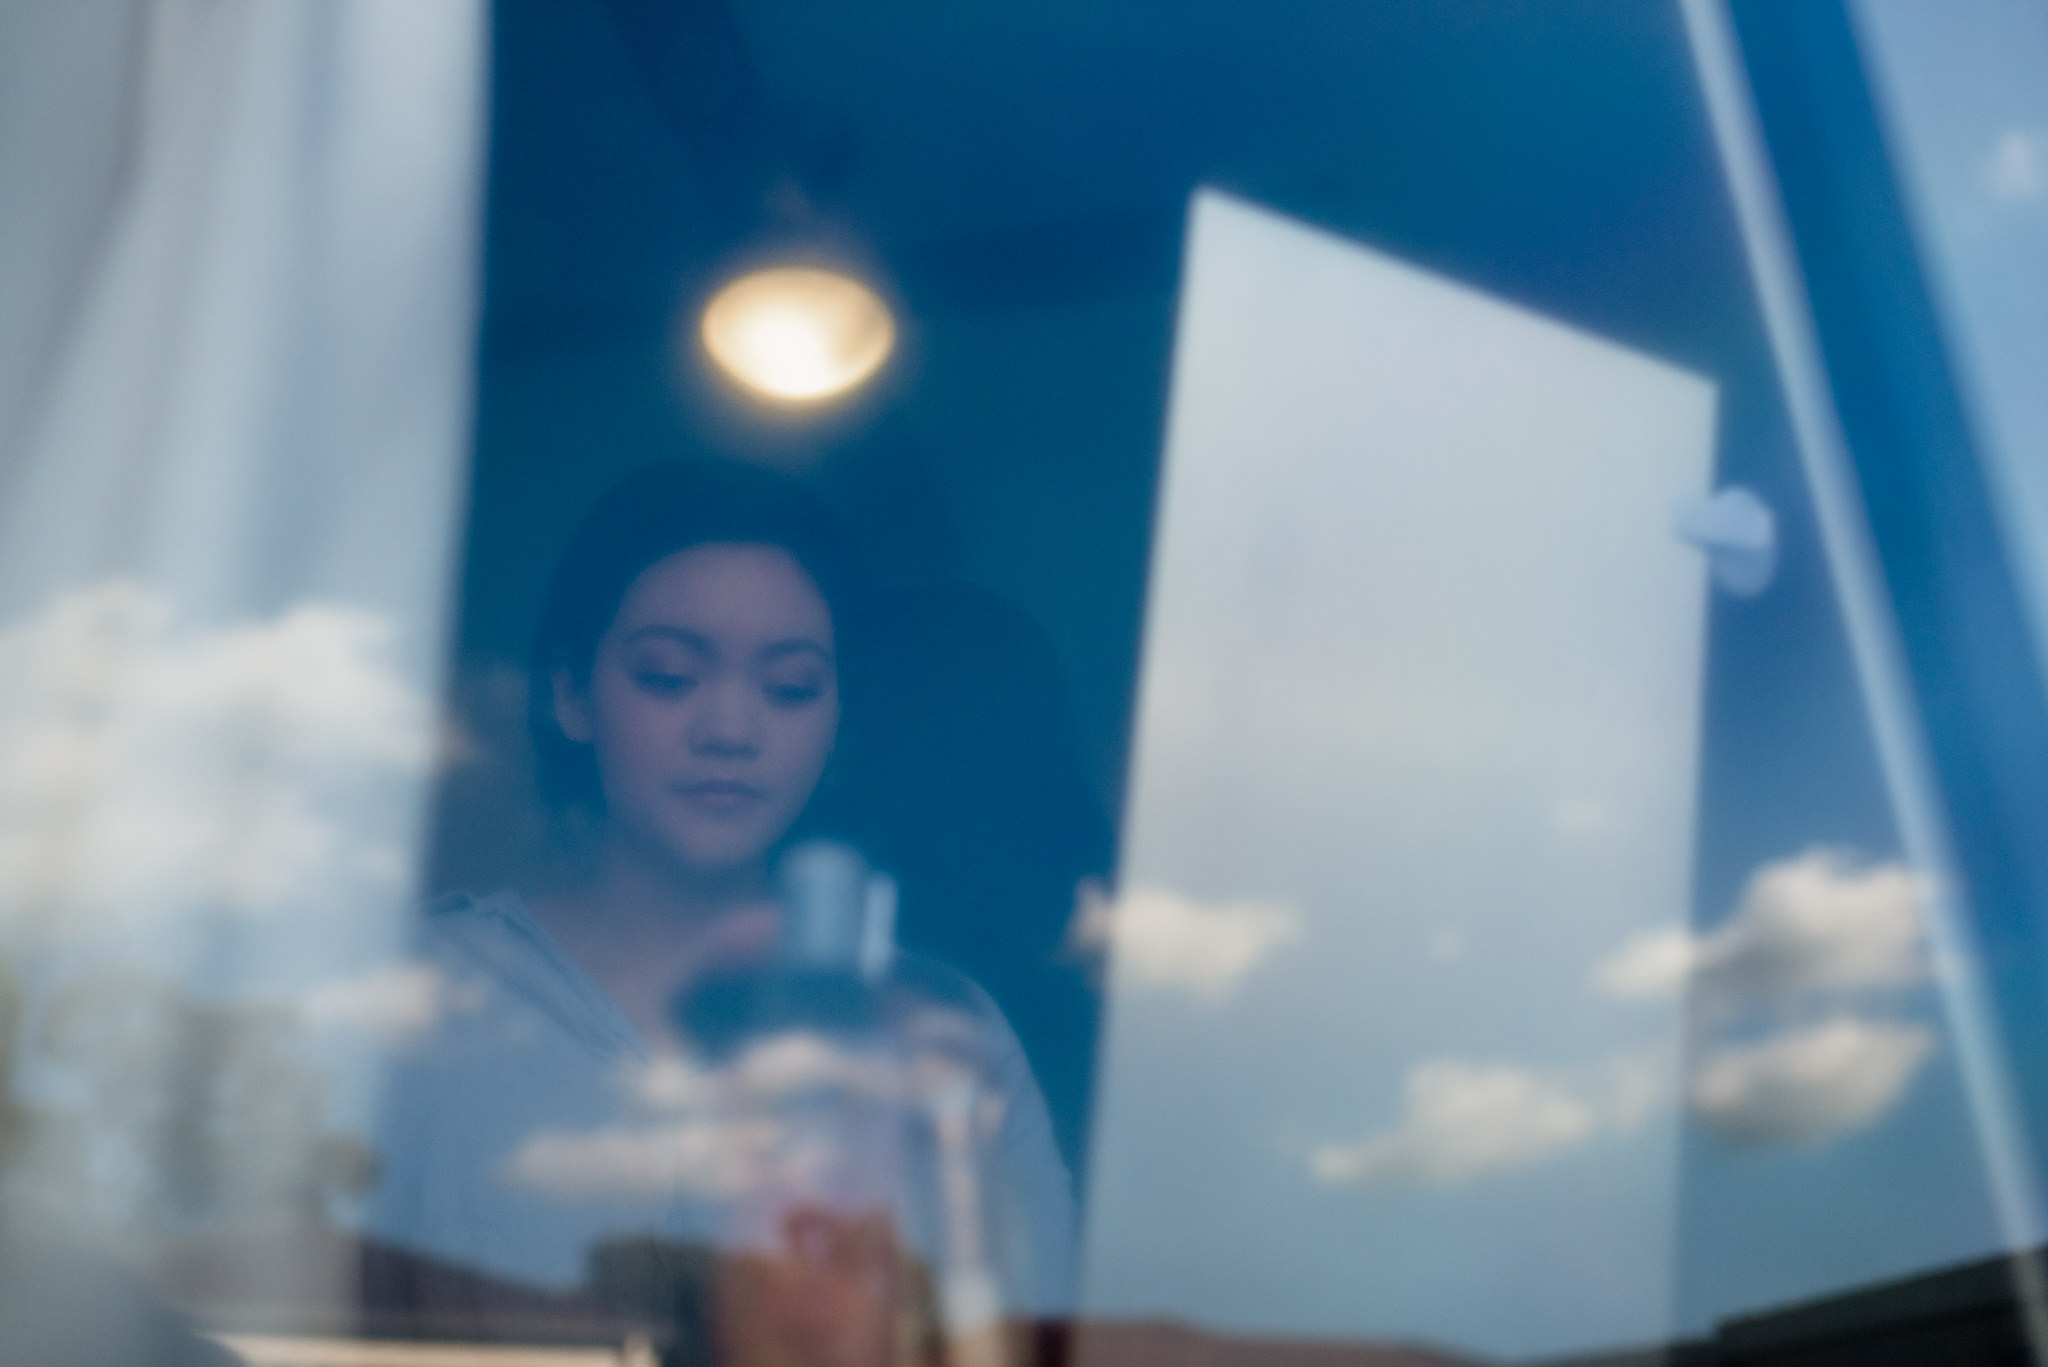 A photo through a window of an asian girl sitting in front of a mirror with a cloudy blue sky reflecting on the window